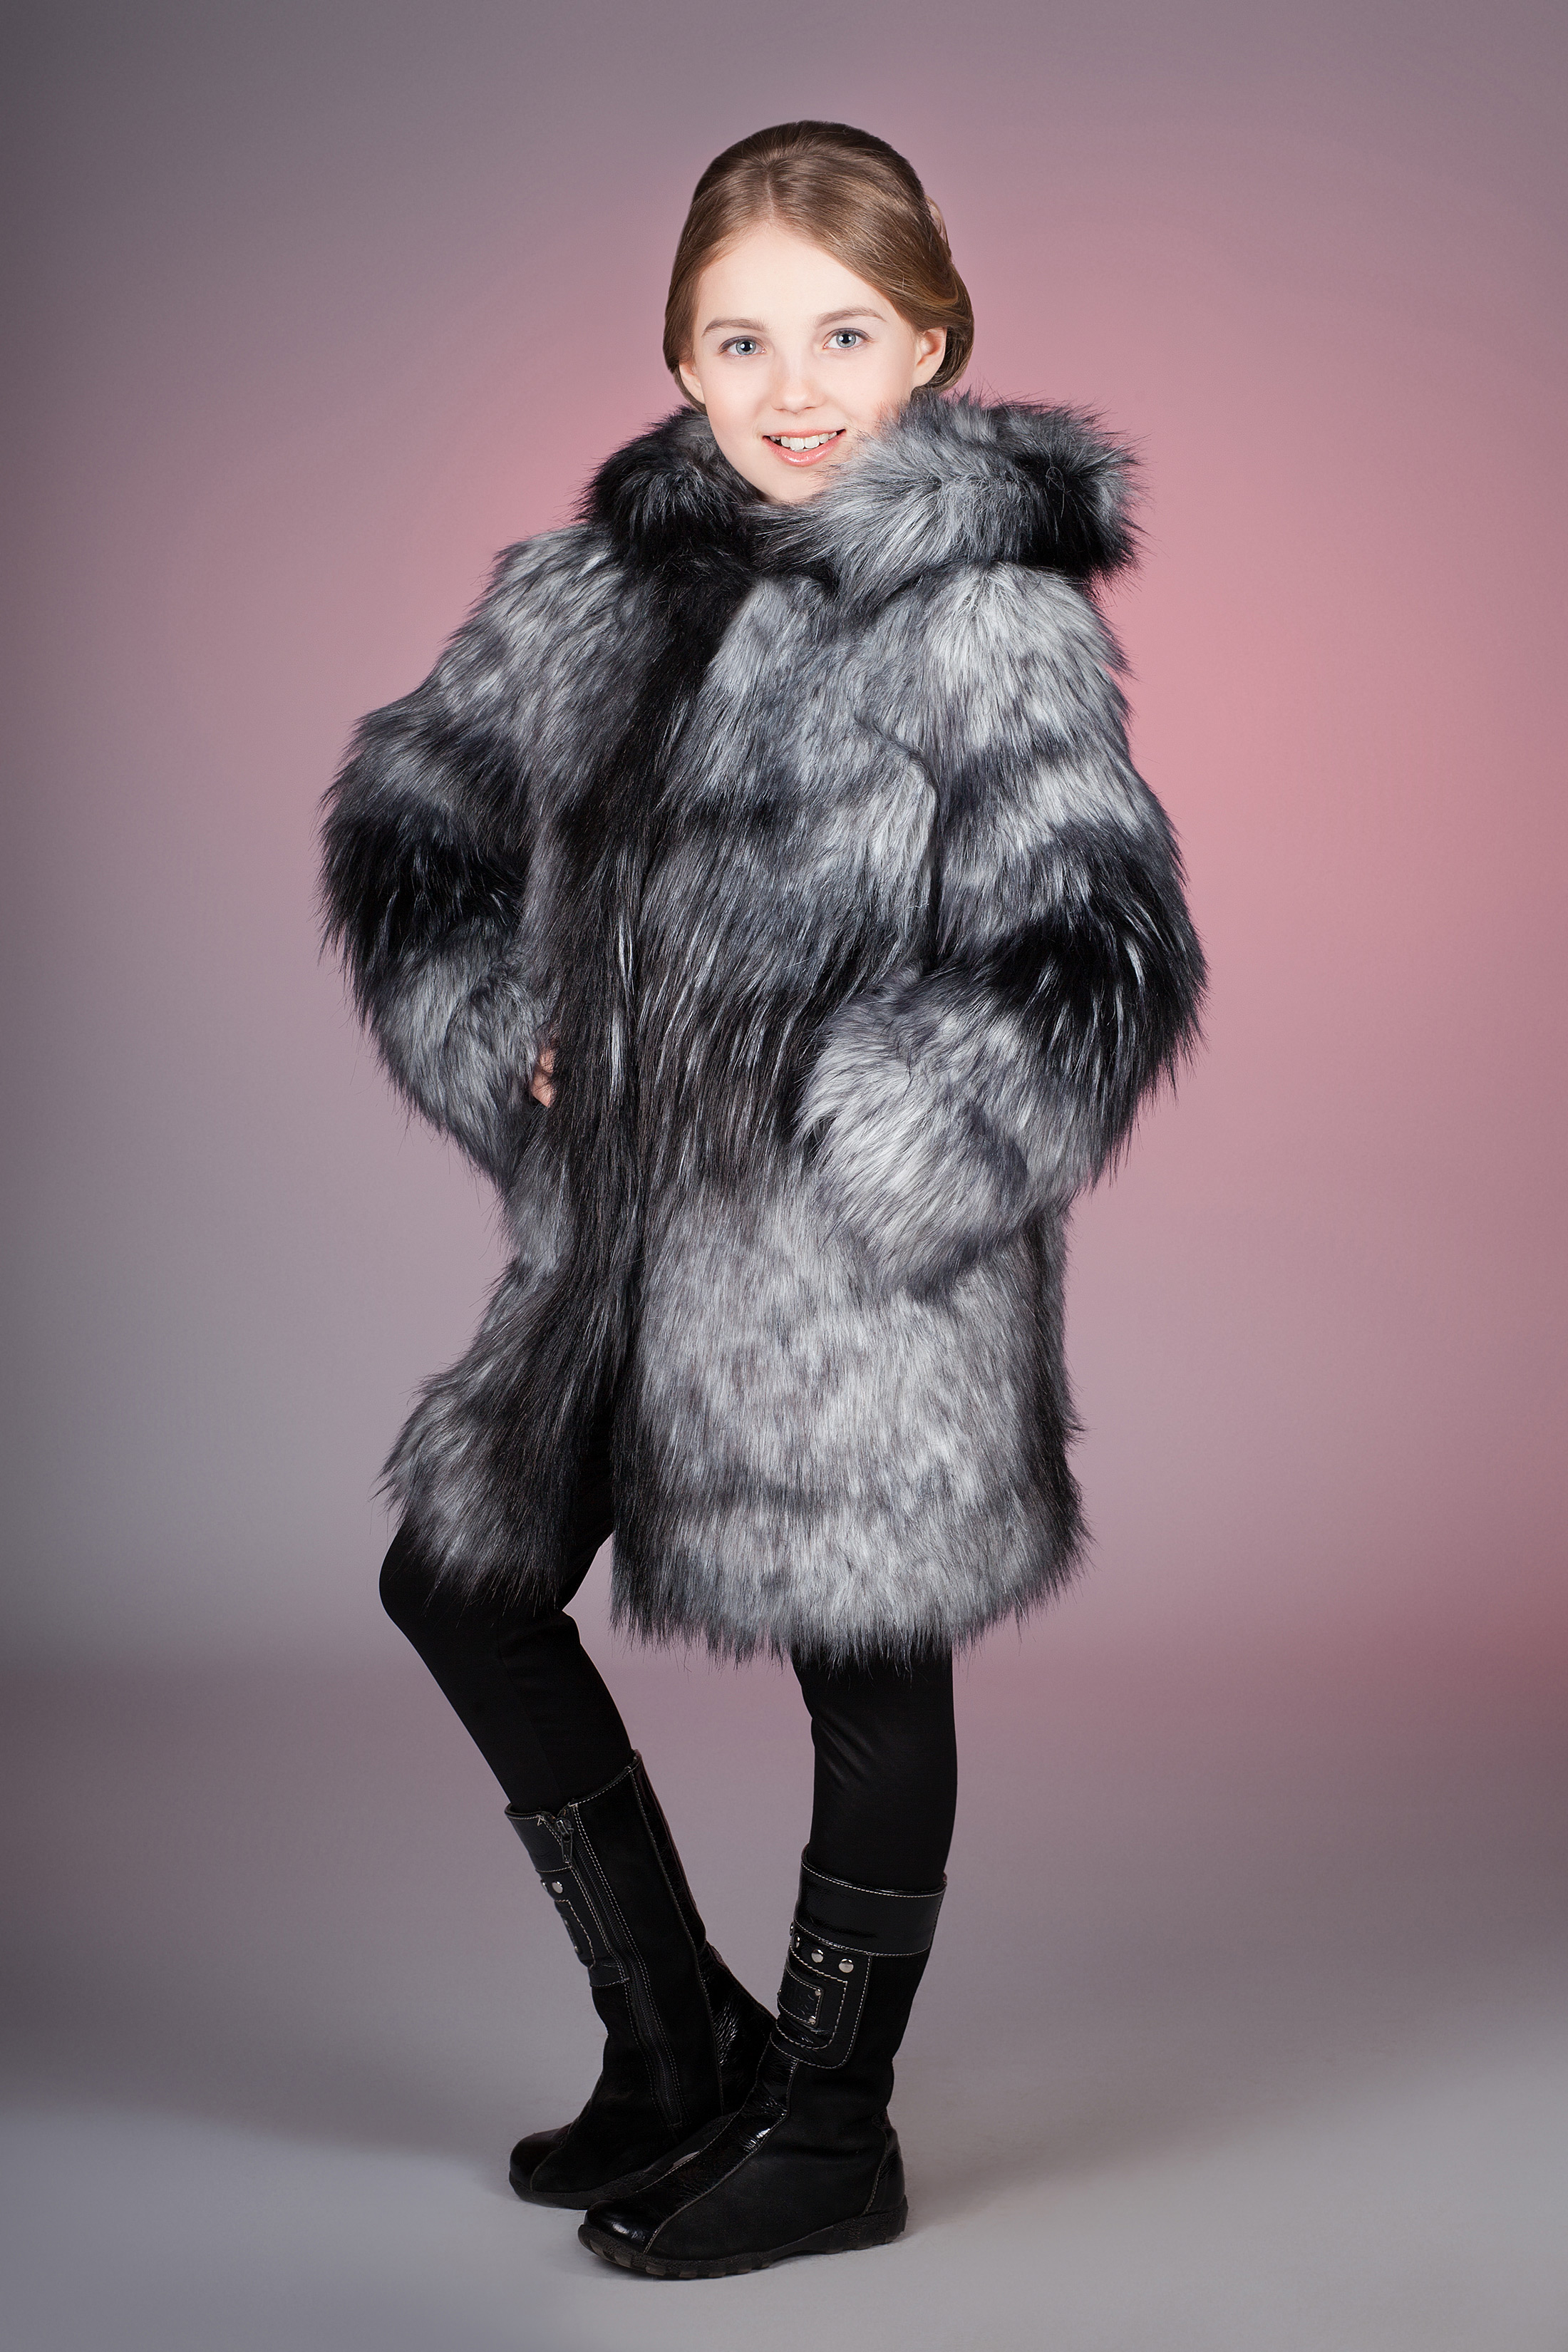 An advertisement from which advertises fur coats for $ to $, equivalent to a starting price of around $4,, reflecting a period of unprecedented prosperity and .